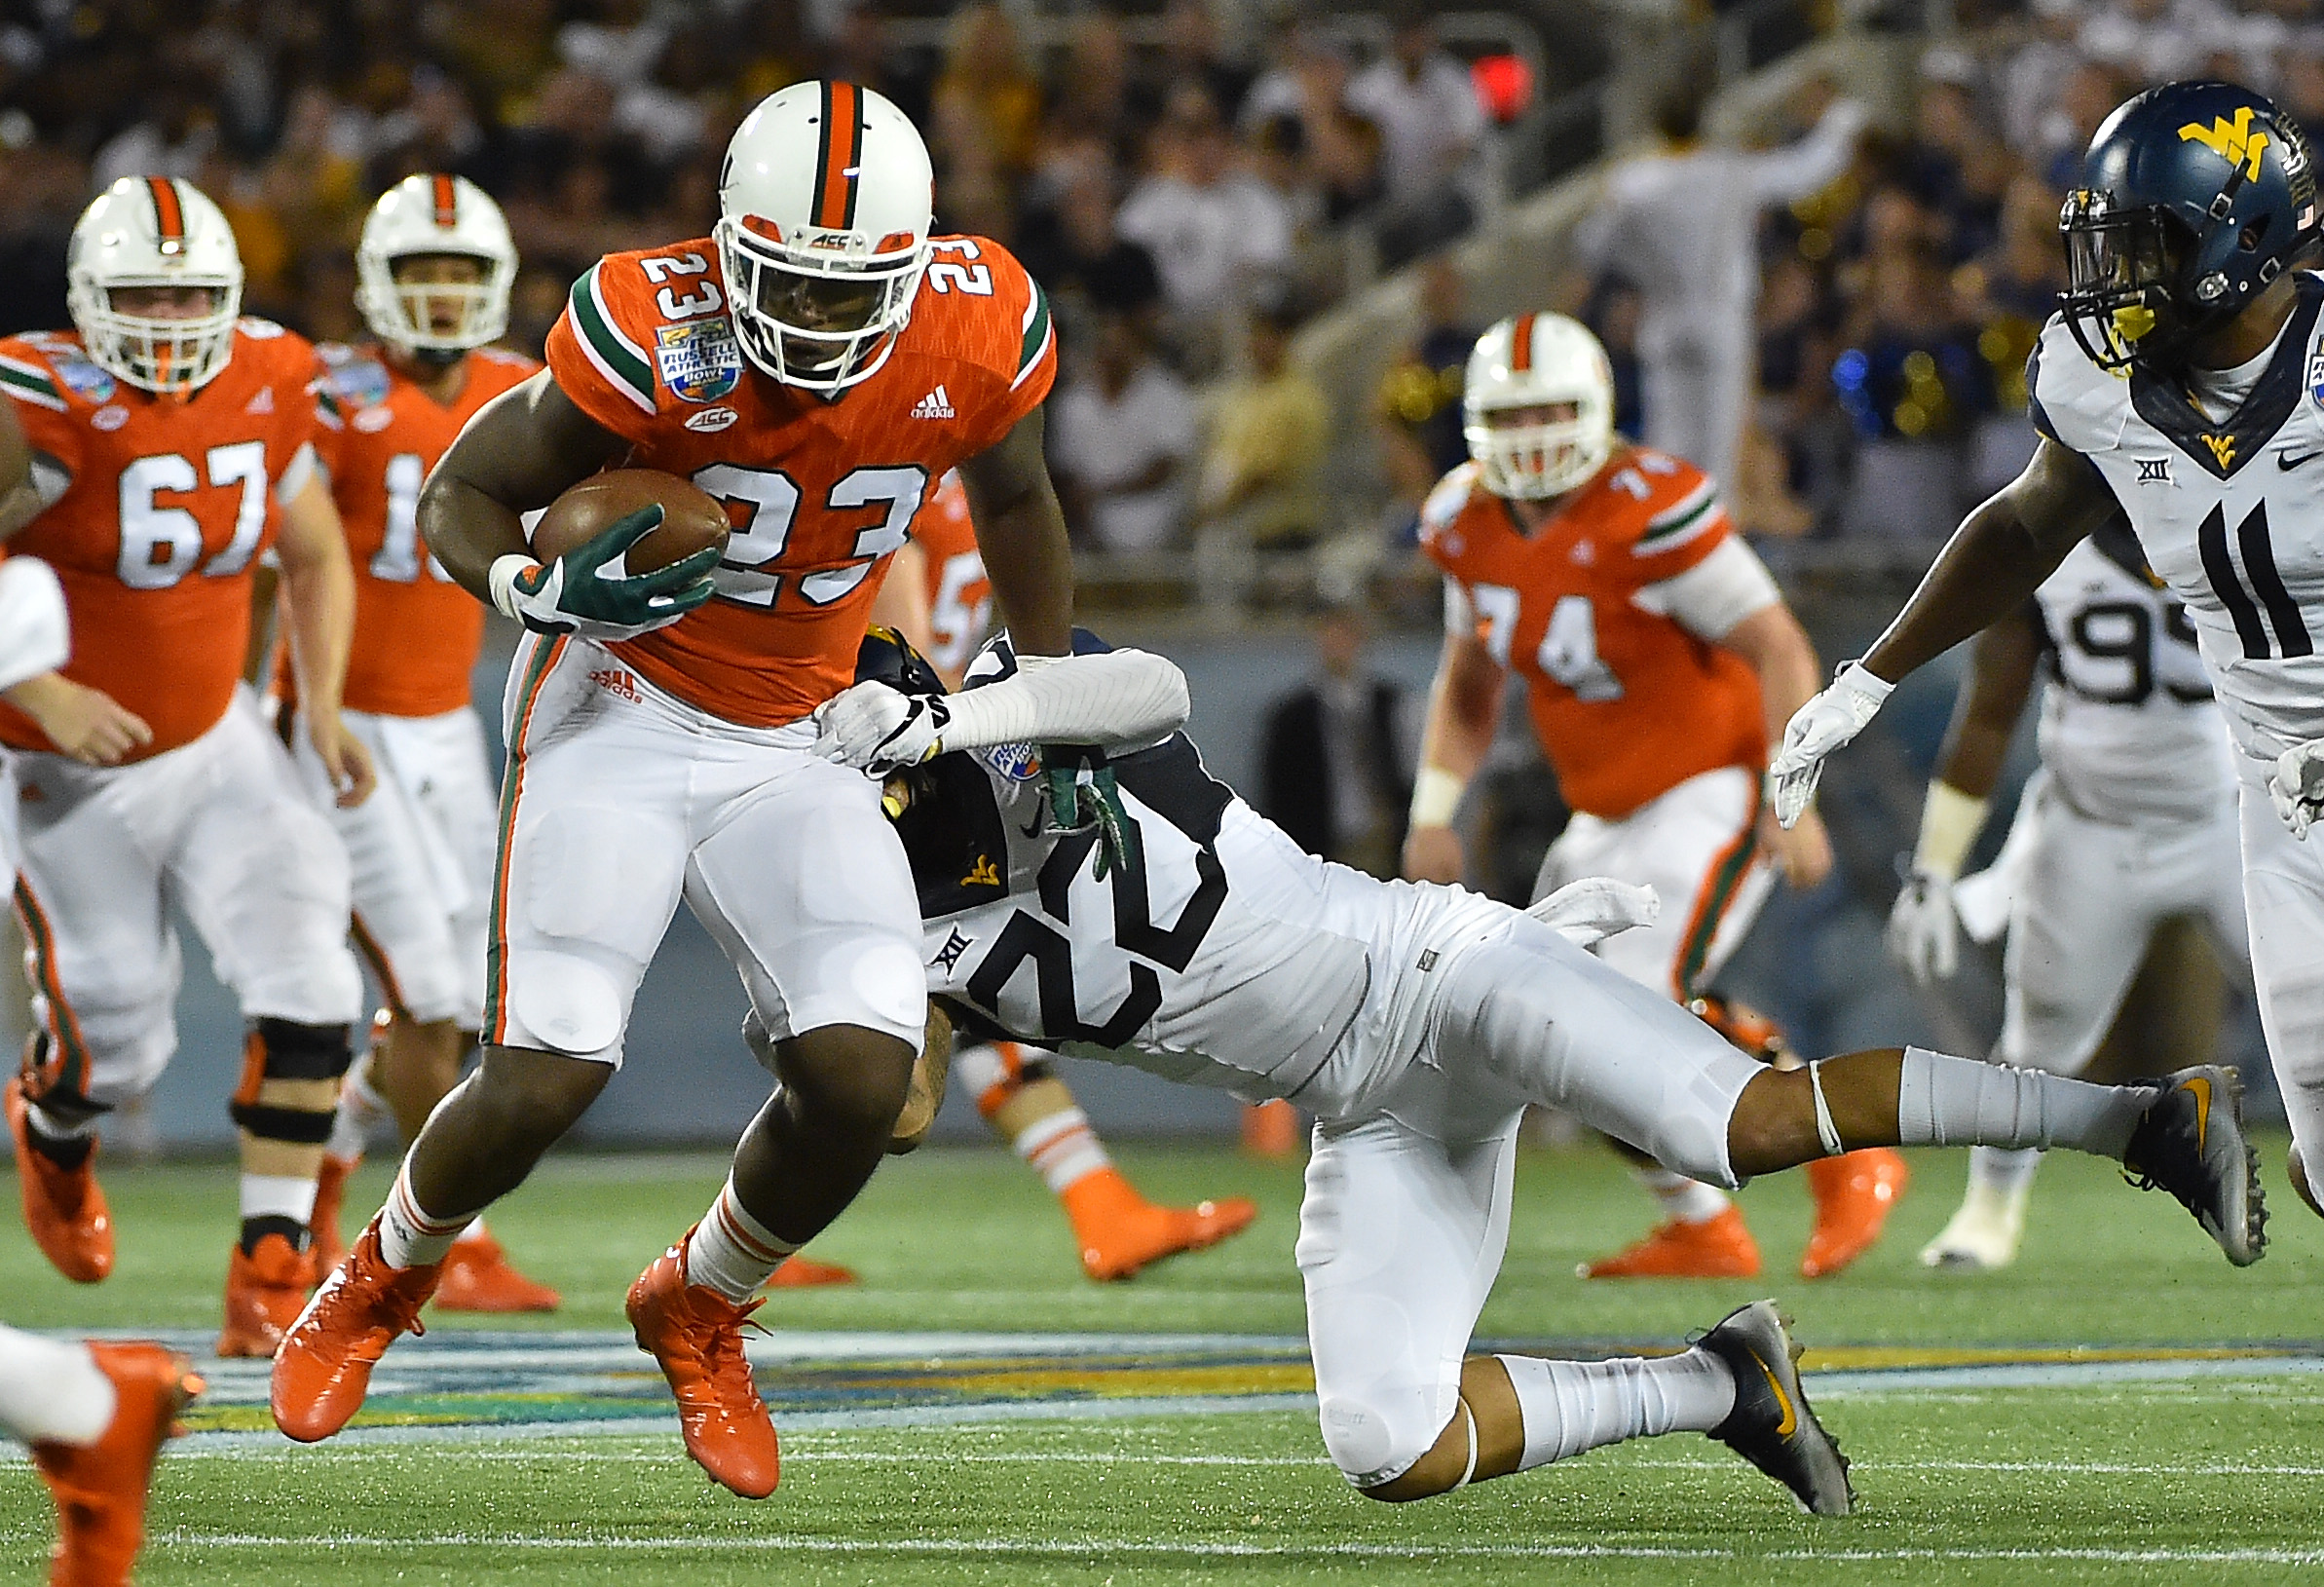 9772377-ncaa-football-russell-athletic-bowl-west-virginia-vs-miami